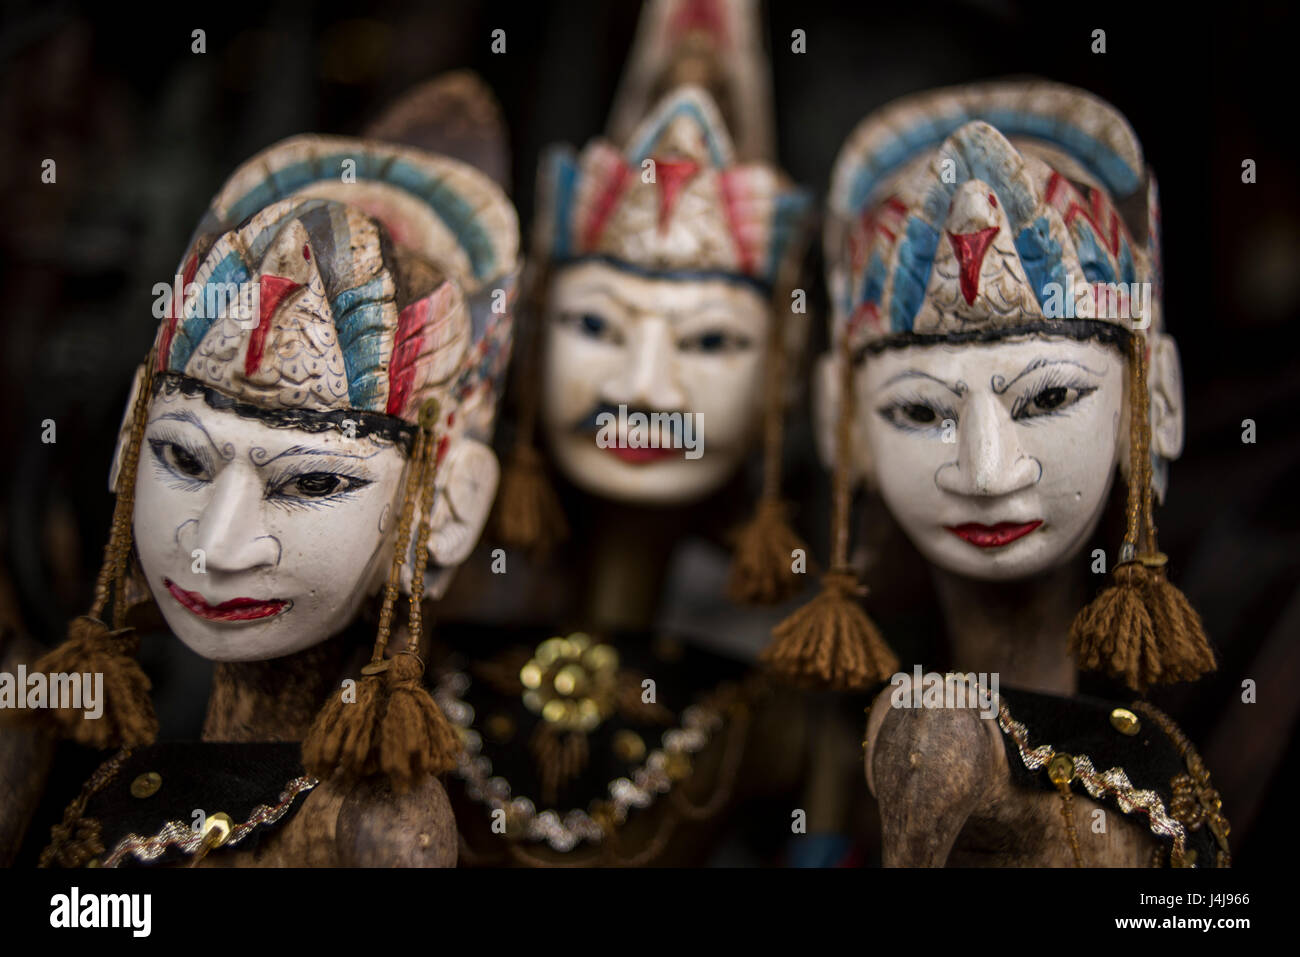 Traditional wooden puppets (wayang golek) from Java, Indonesia. - Stock Image